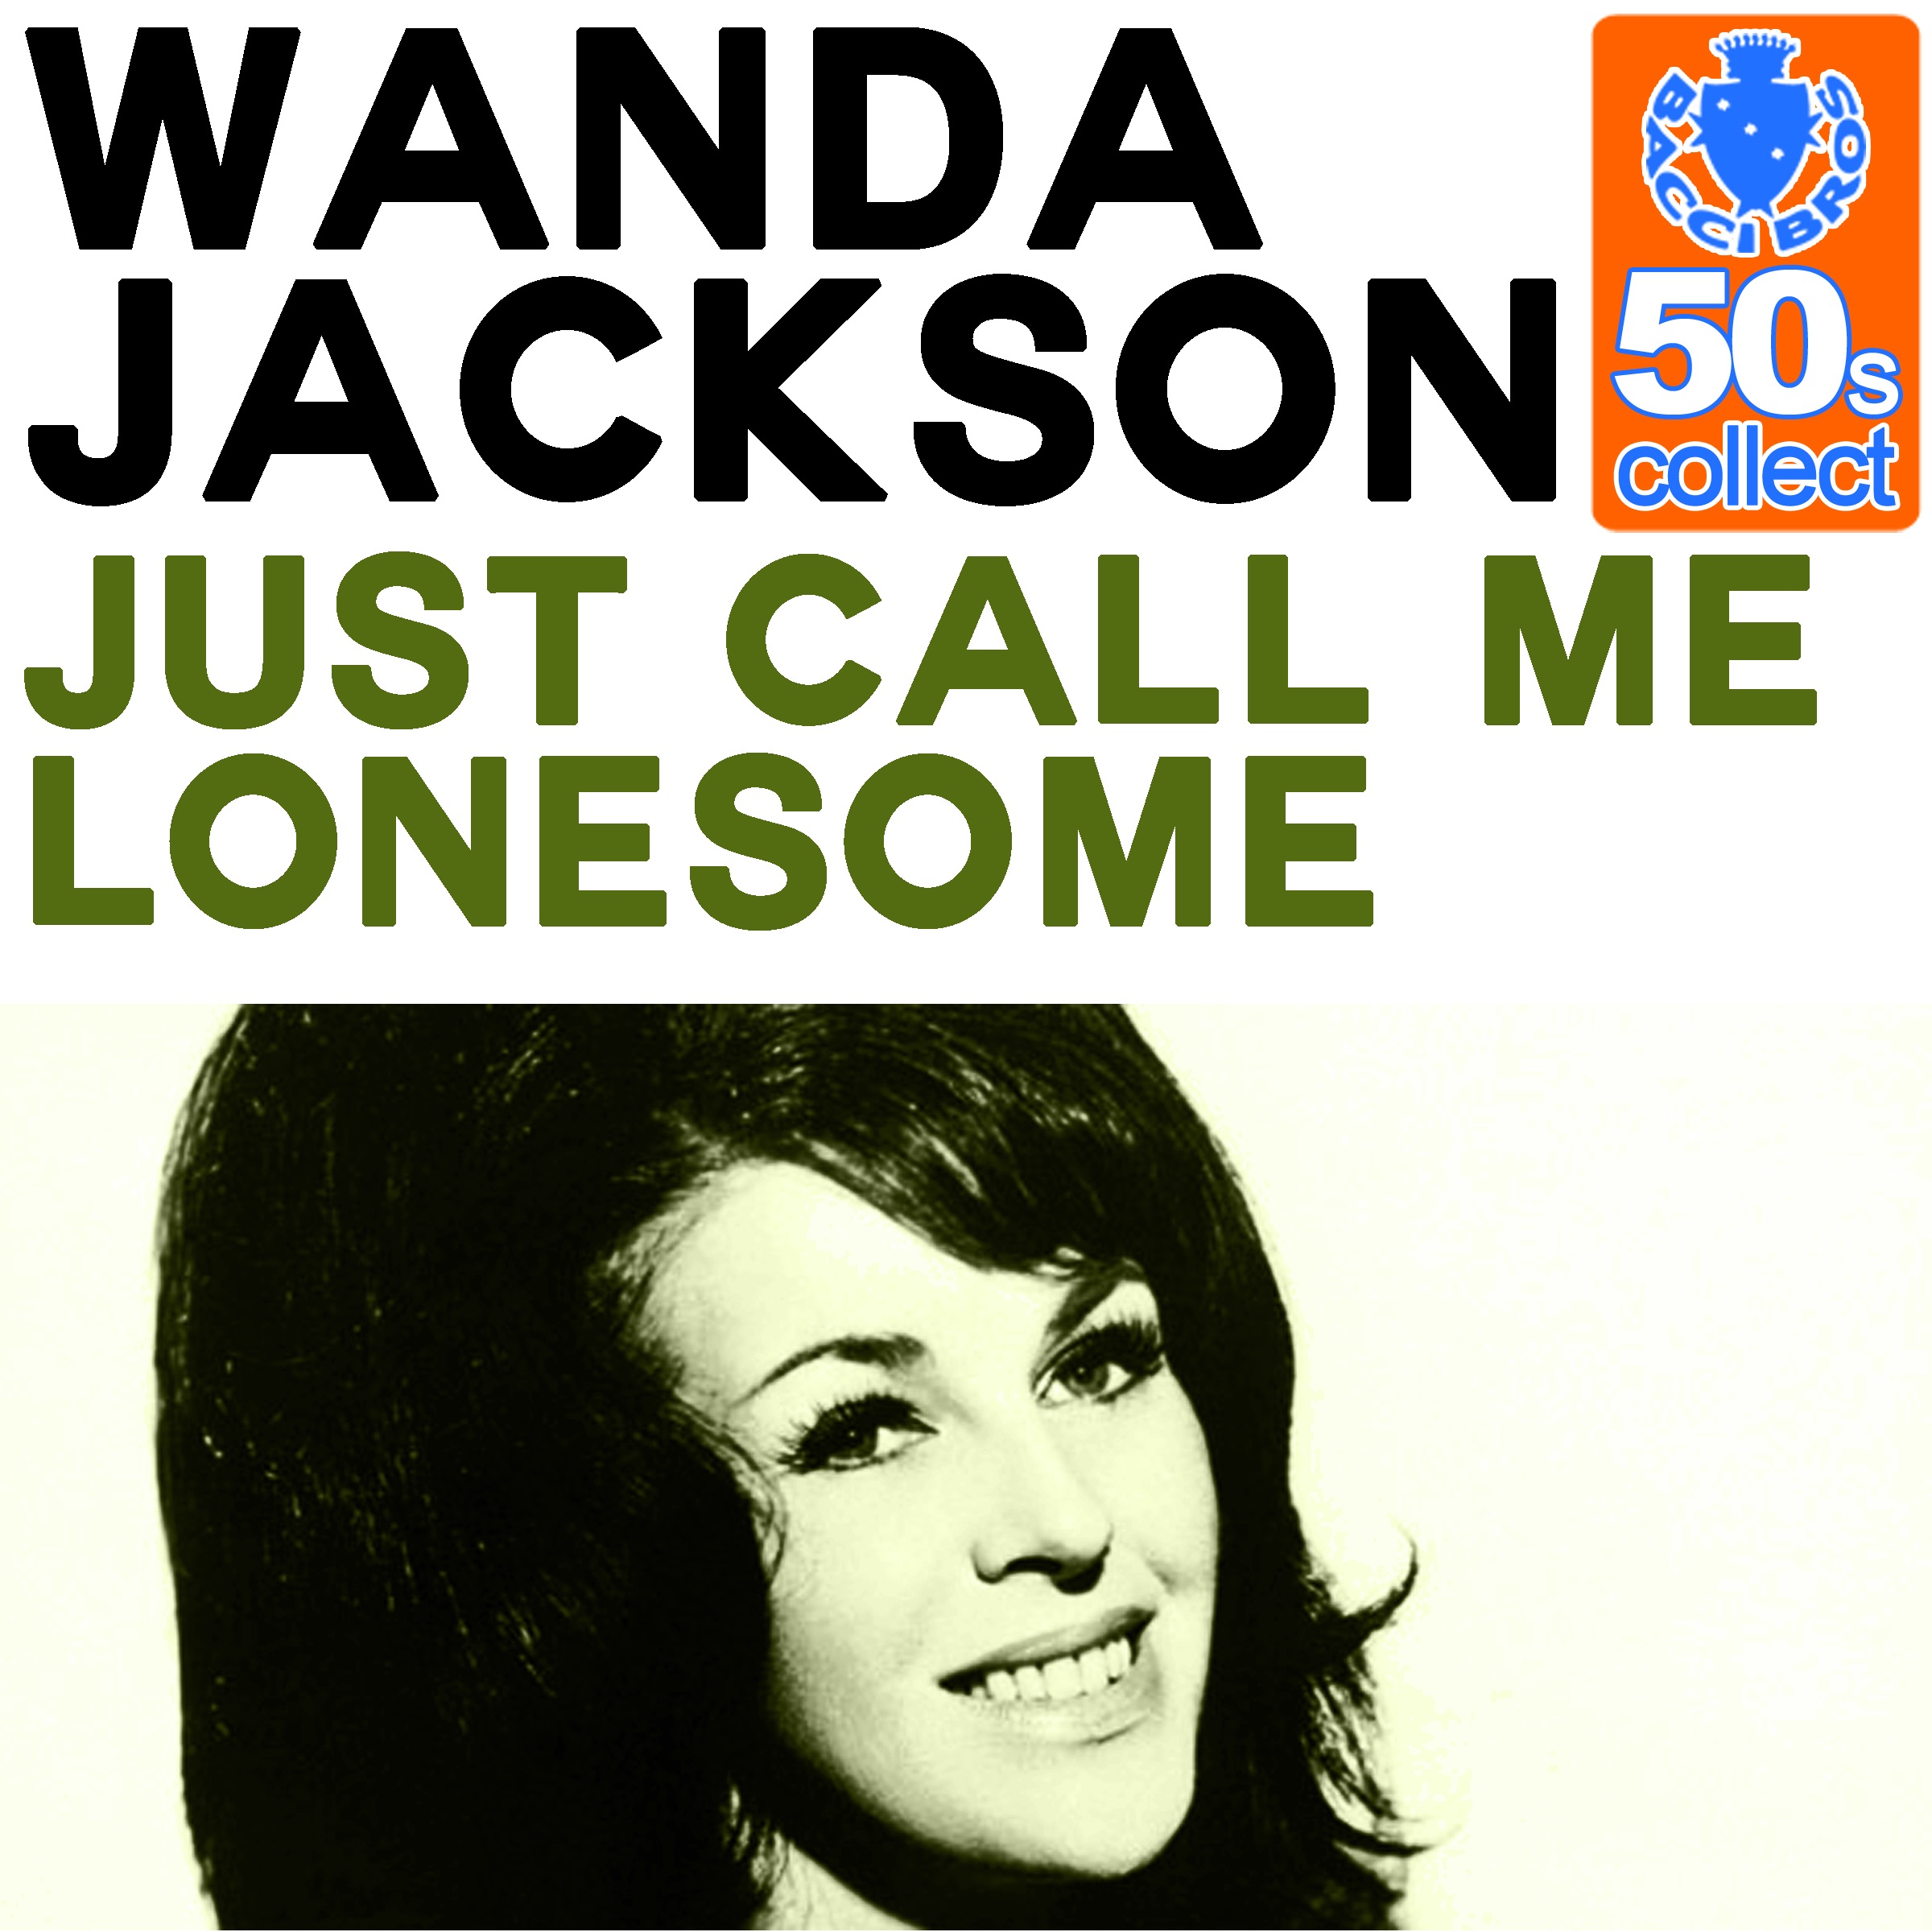 Just Call Me Lonesome (Remastered) - Single